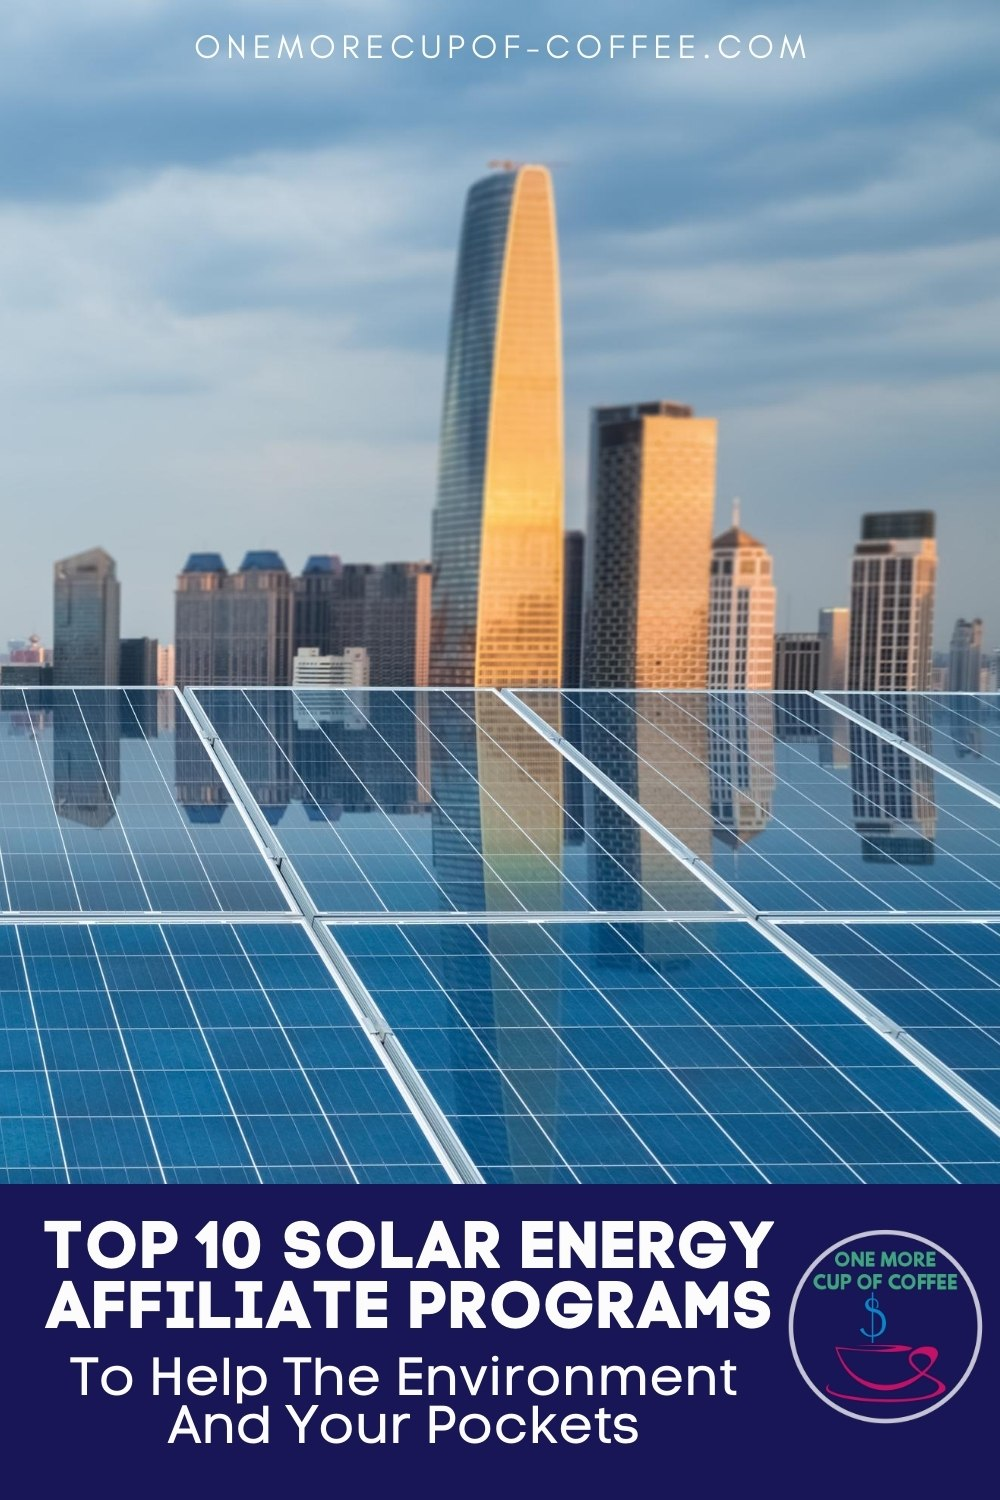 """closeup image of solar panels with the view of skyscrapers at a distance, with text overlay """"Top 10 Solar Energy Affiliate Programs To Help The Environment And Your Pockets"""""""